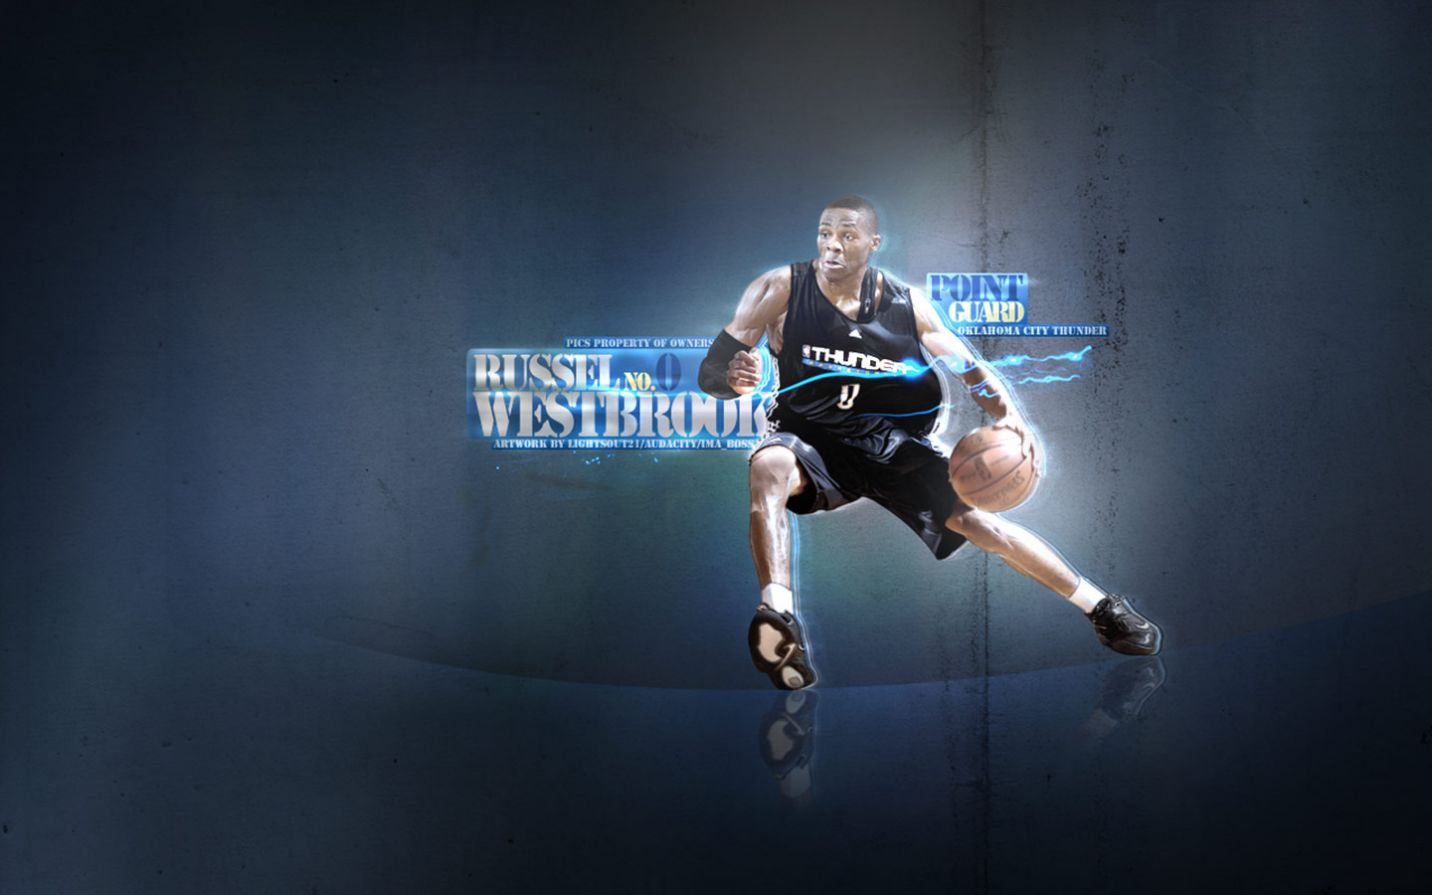 Tracy Mcgrady Iphone Wallpaper Russell Westbrook New Hd Wallpapers 2012 Its All About